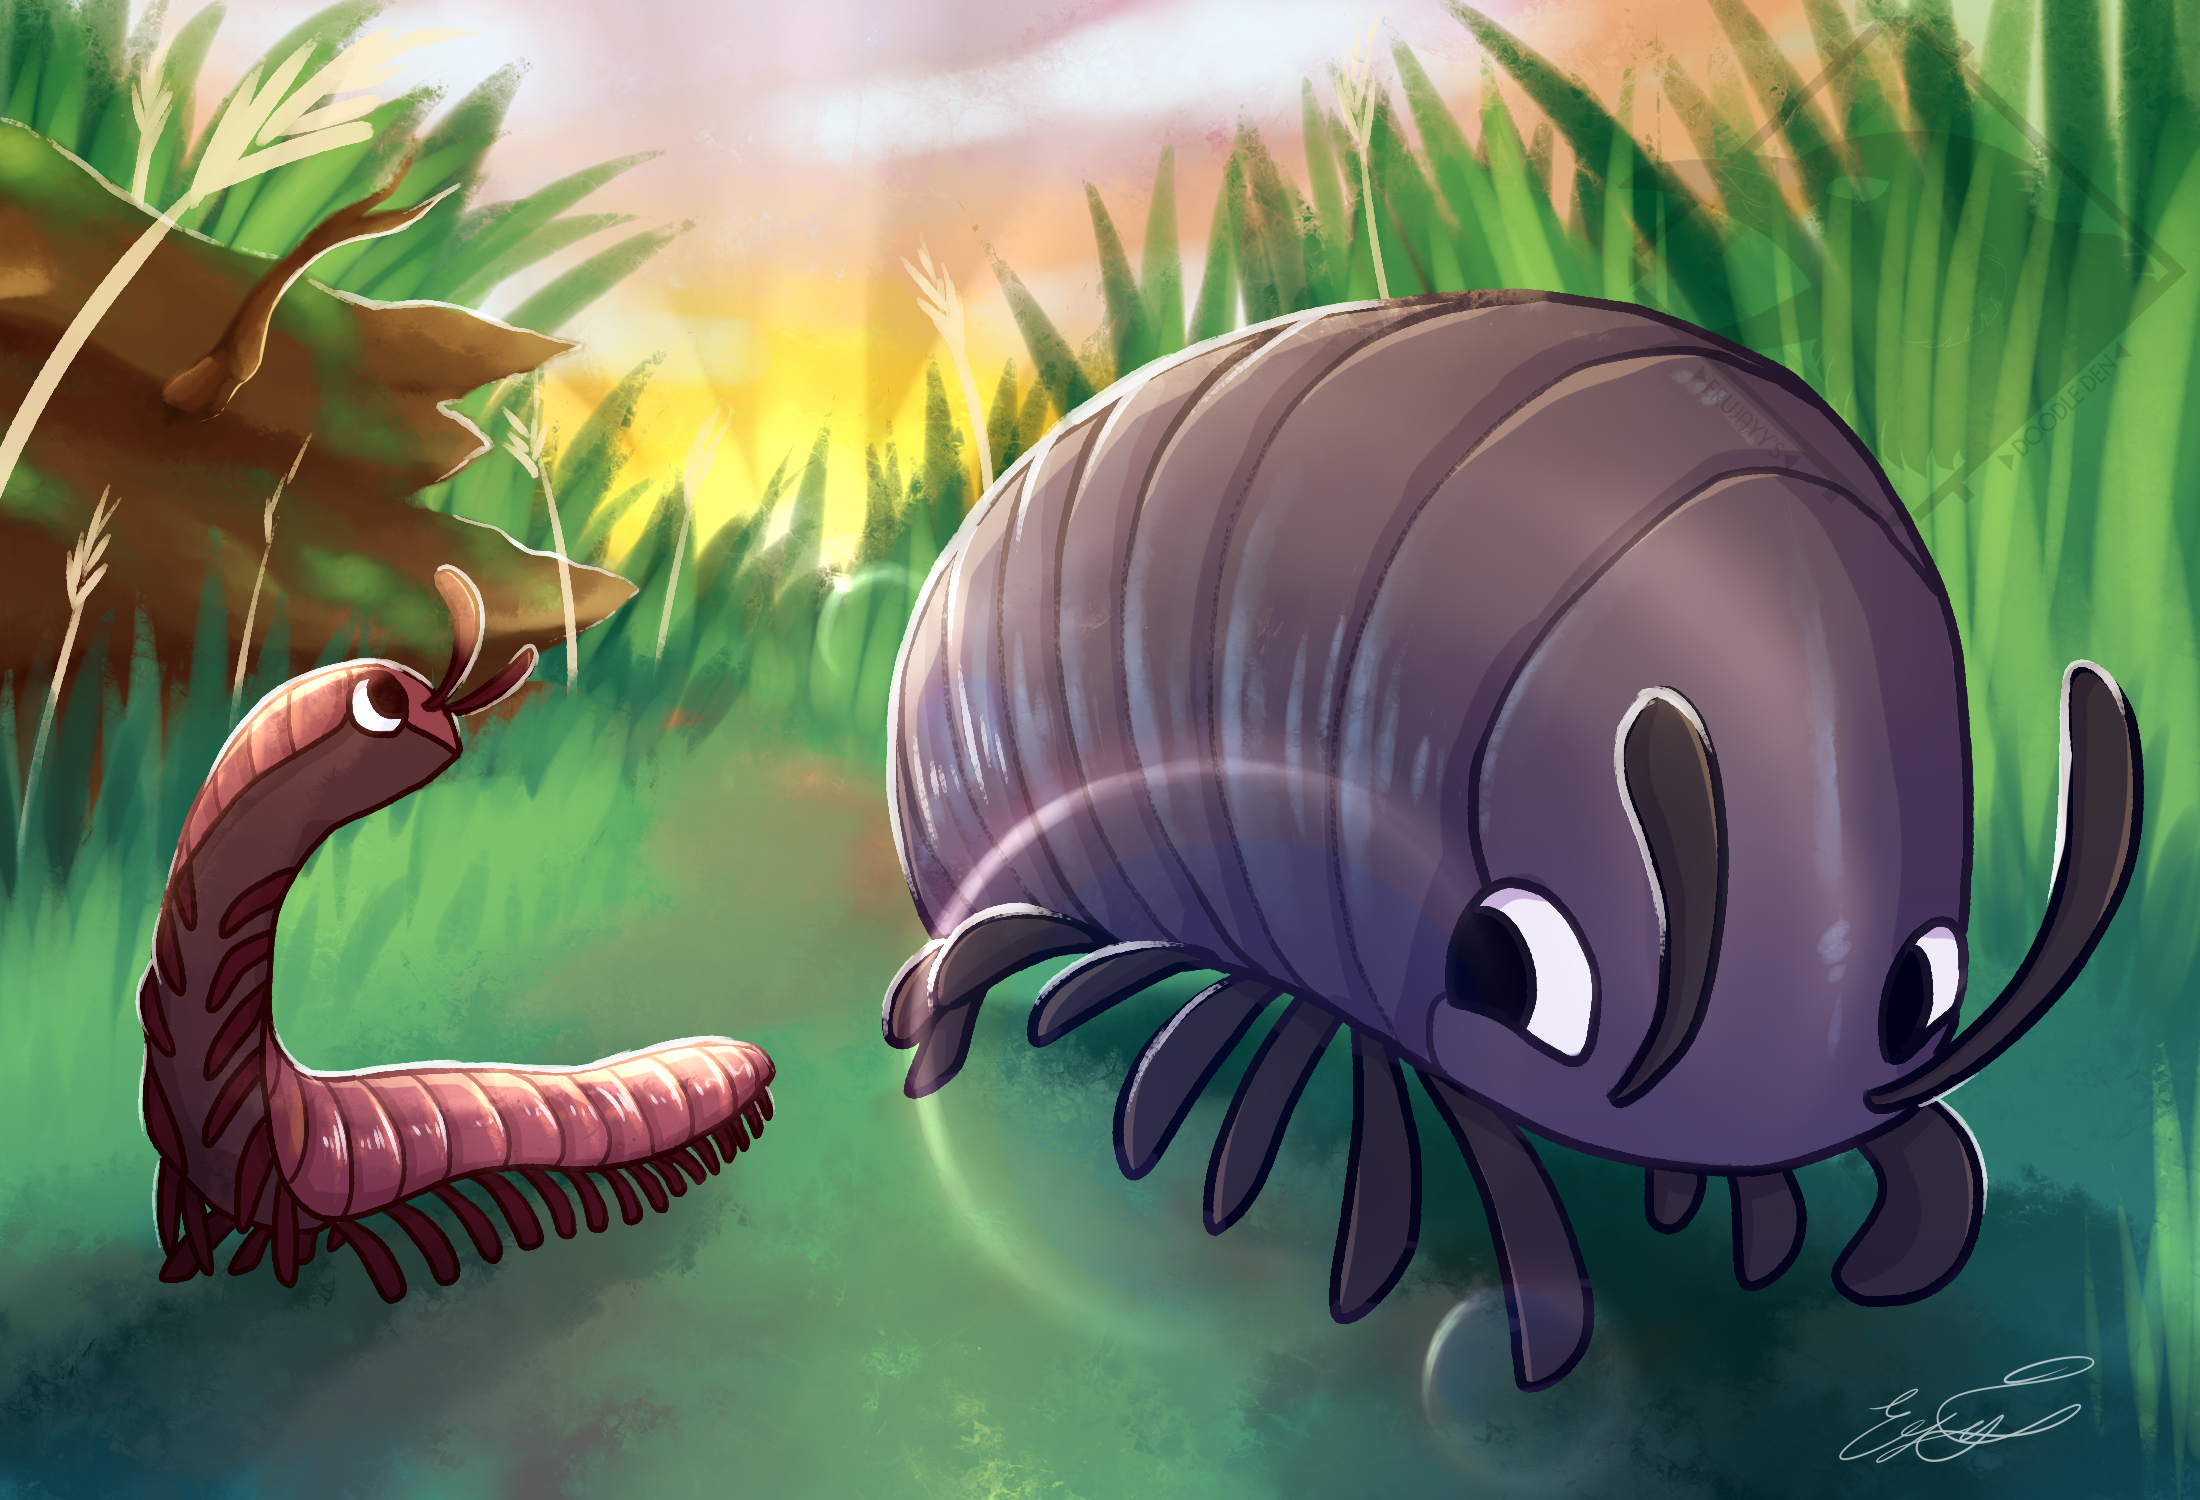 Millipede chonk and noodle